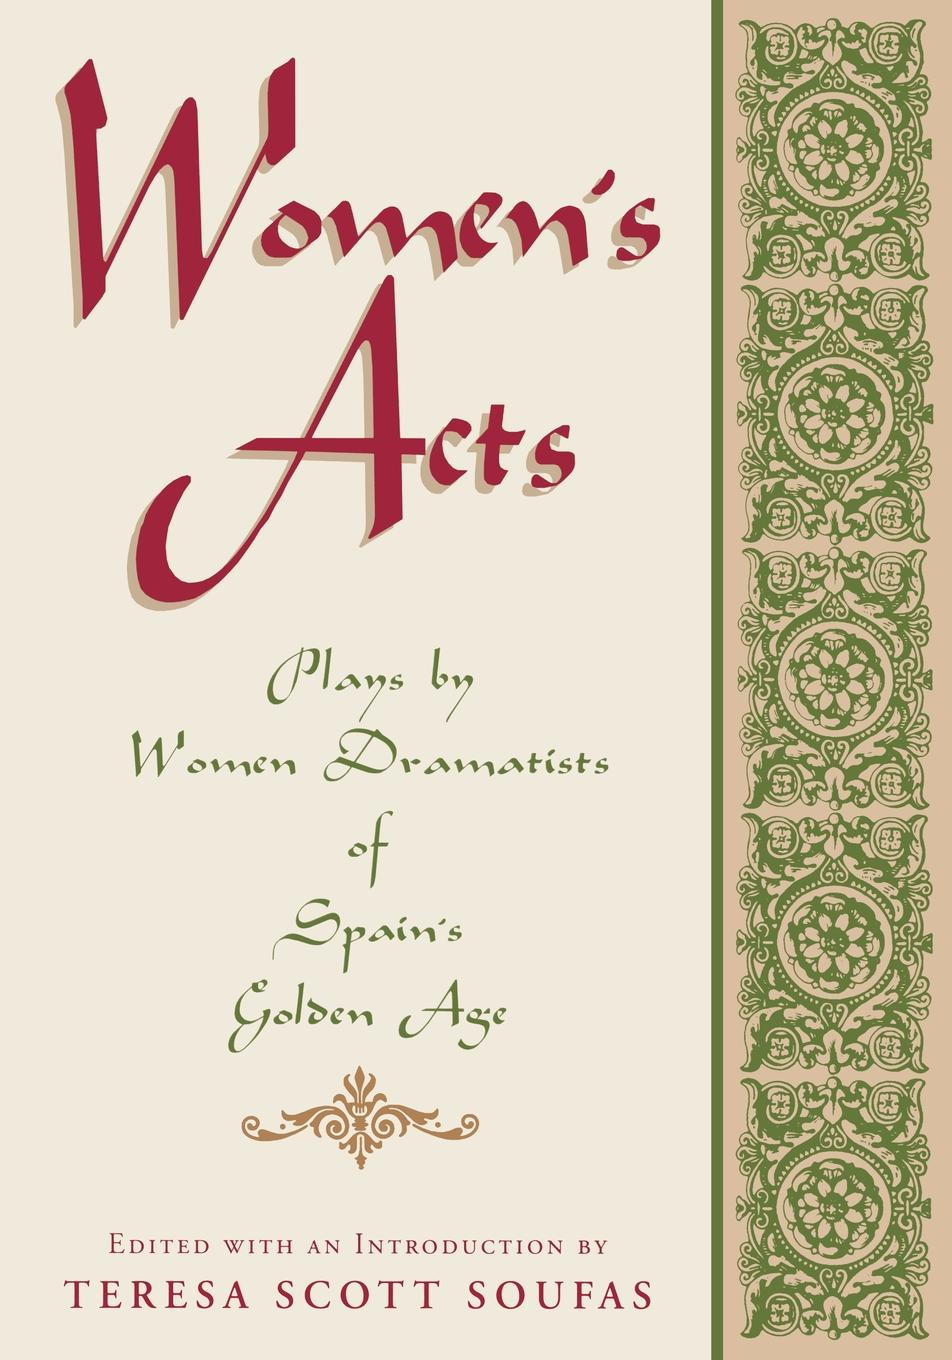 Womens Acts. Plays by Women Dramatists of Spains Golden Age